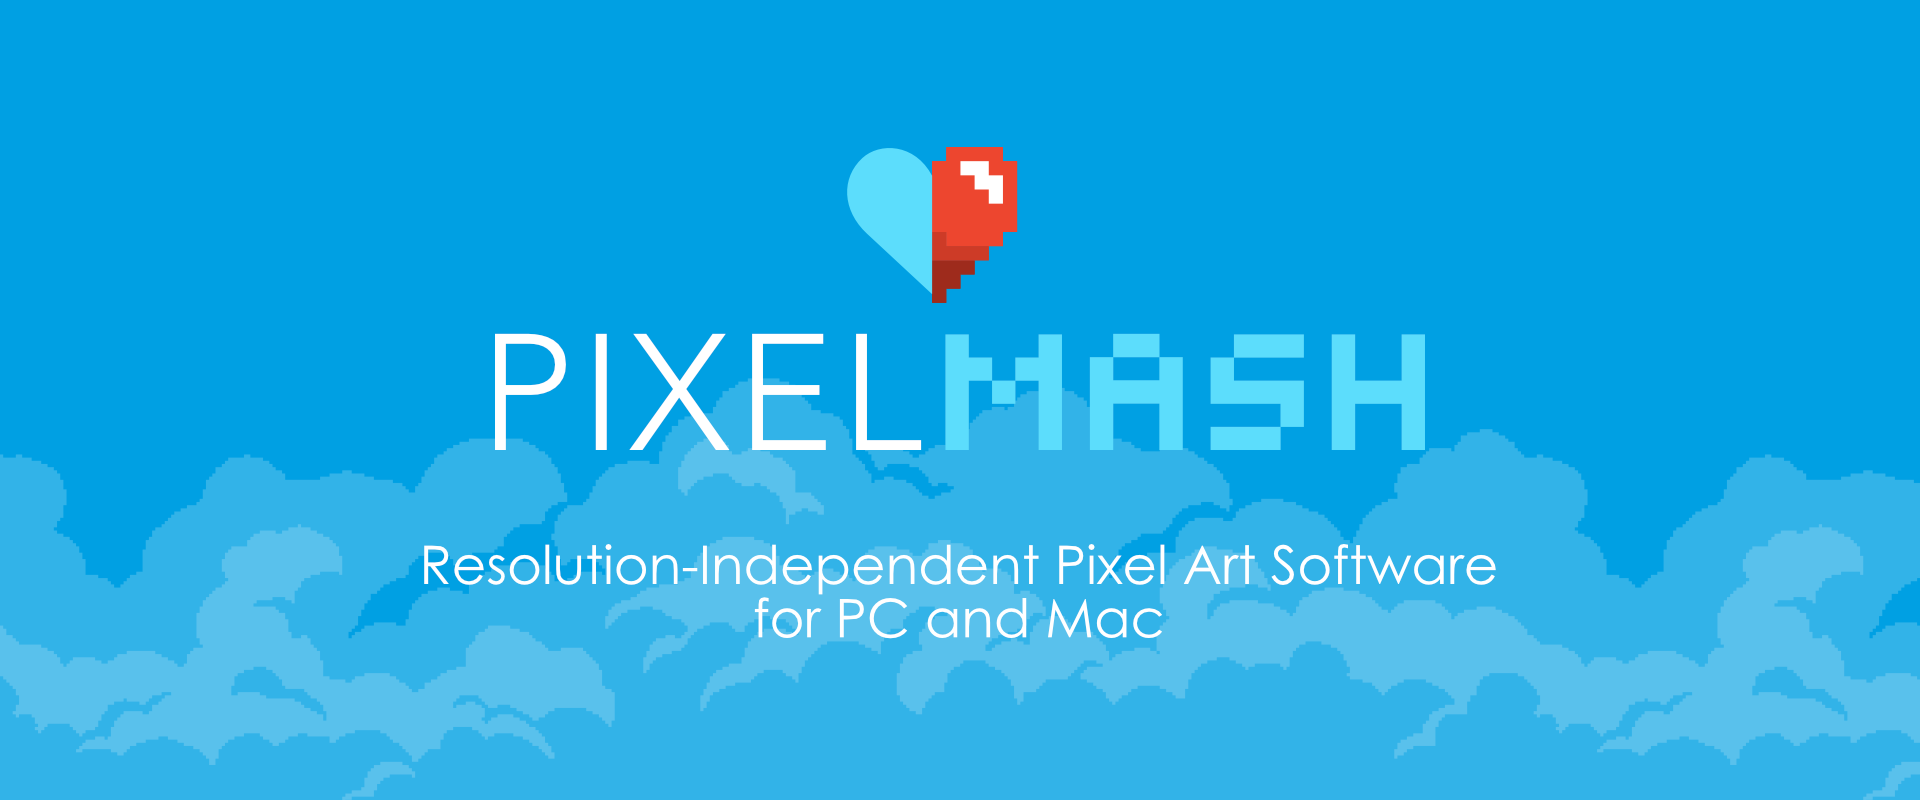 Pixelmash - Resolution-Independent Pixel Art